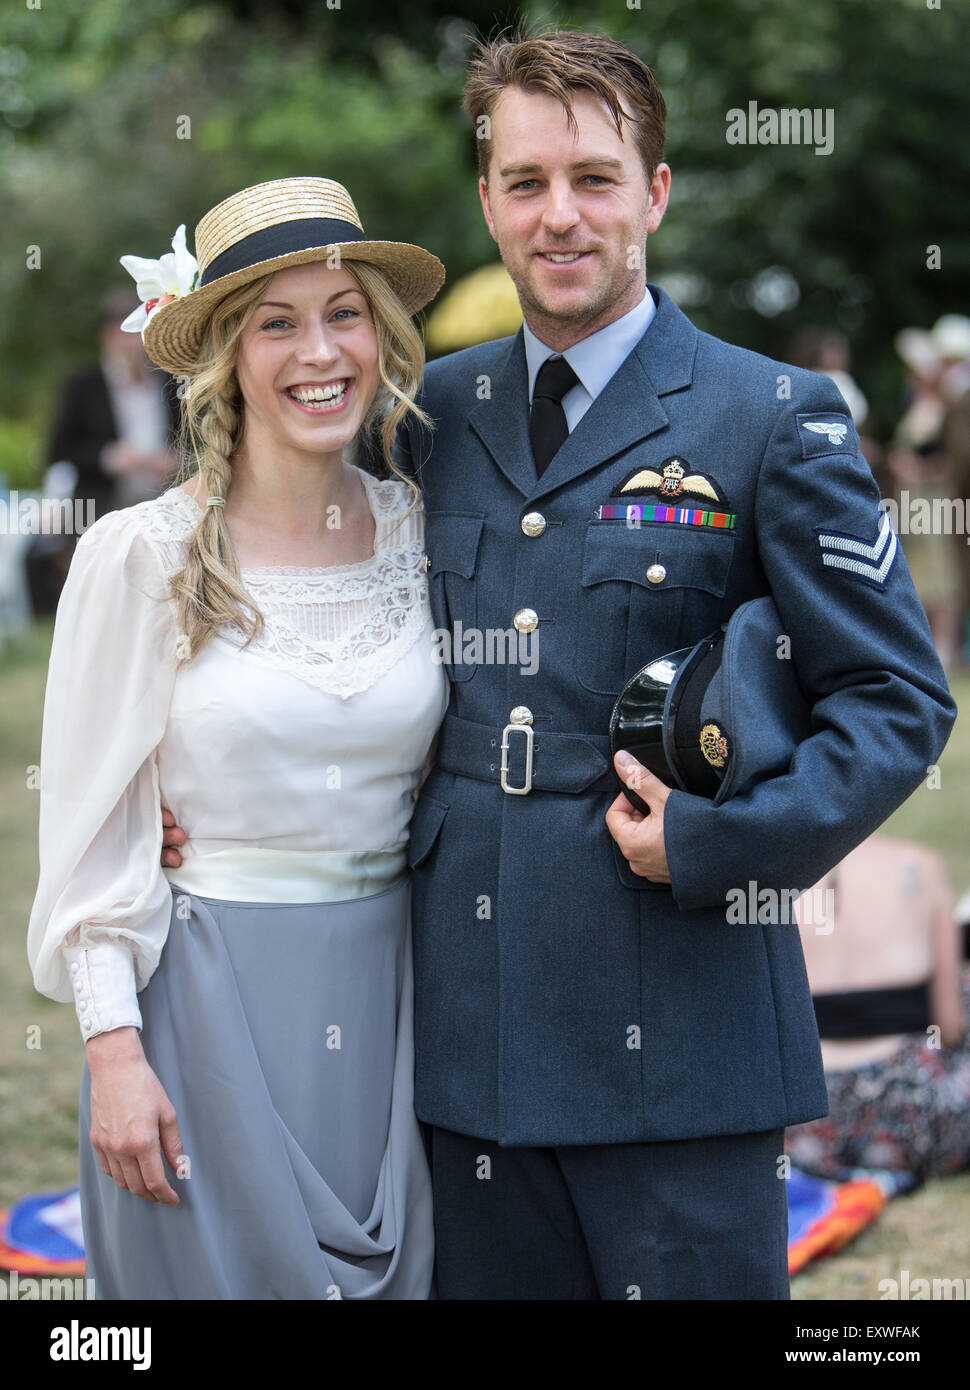 Picnic in the square with man in RAF uniform and Lady with boater - Stock Image